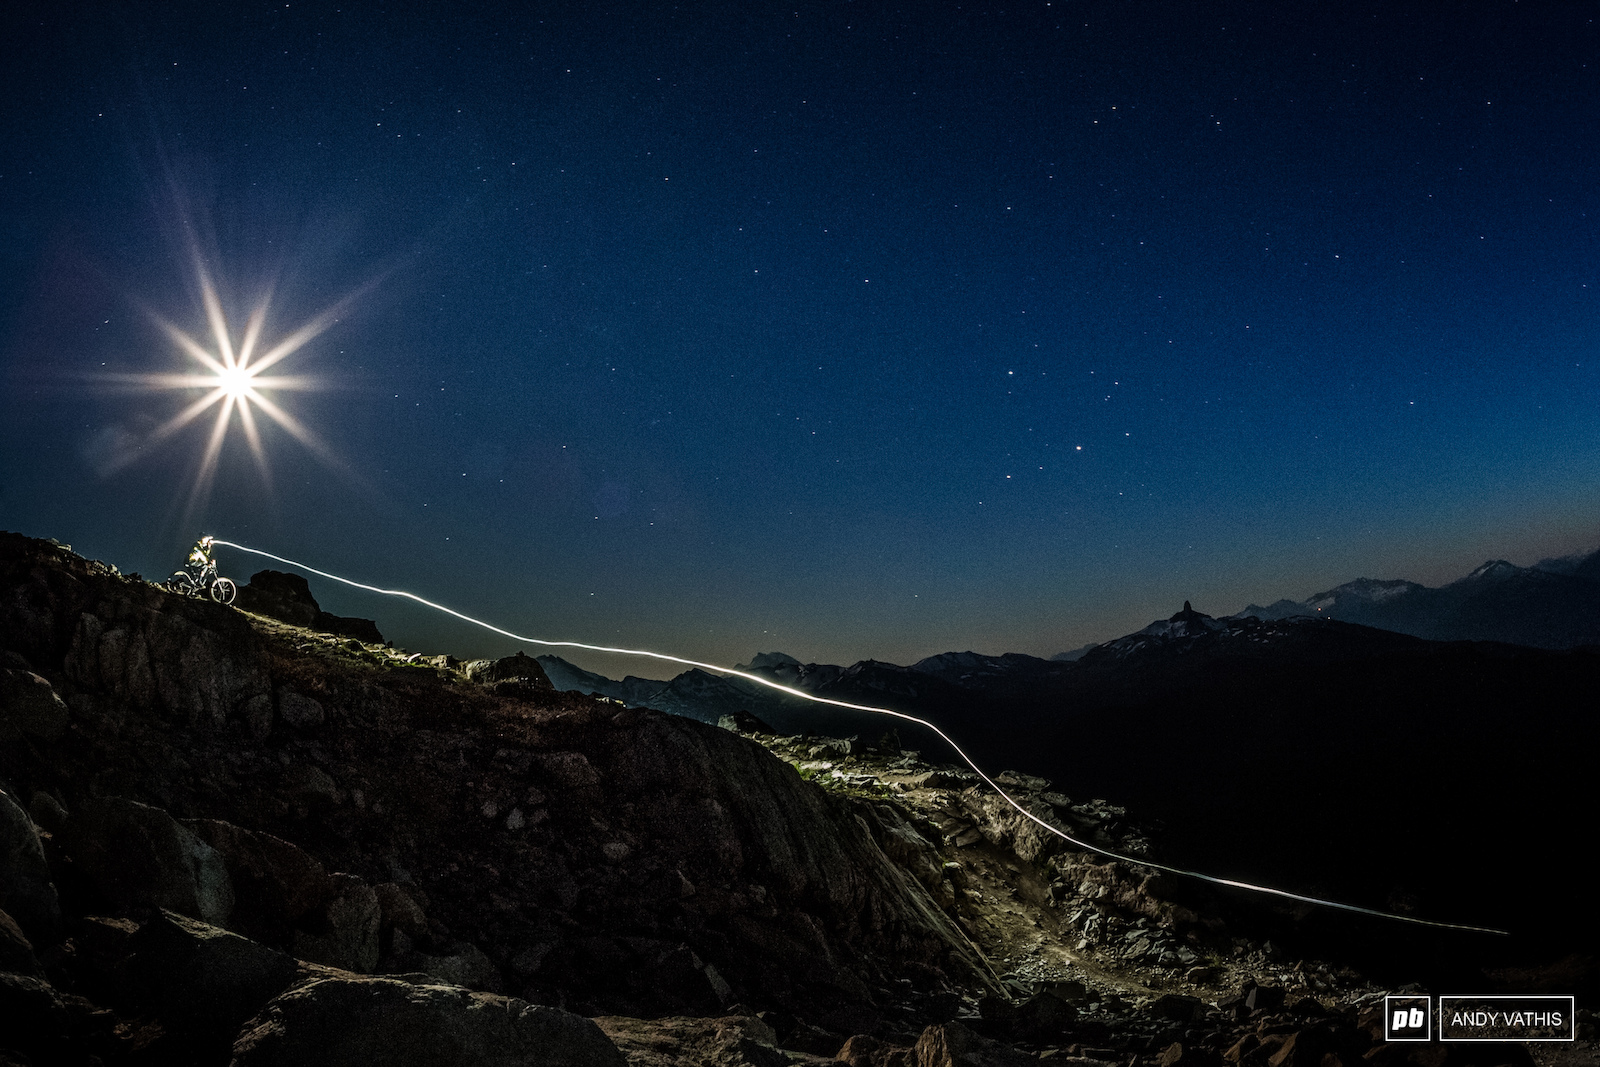 On top of the world with the moon and stars as guides.